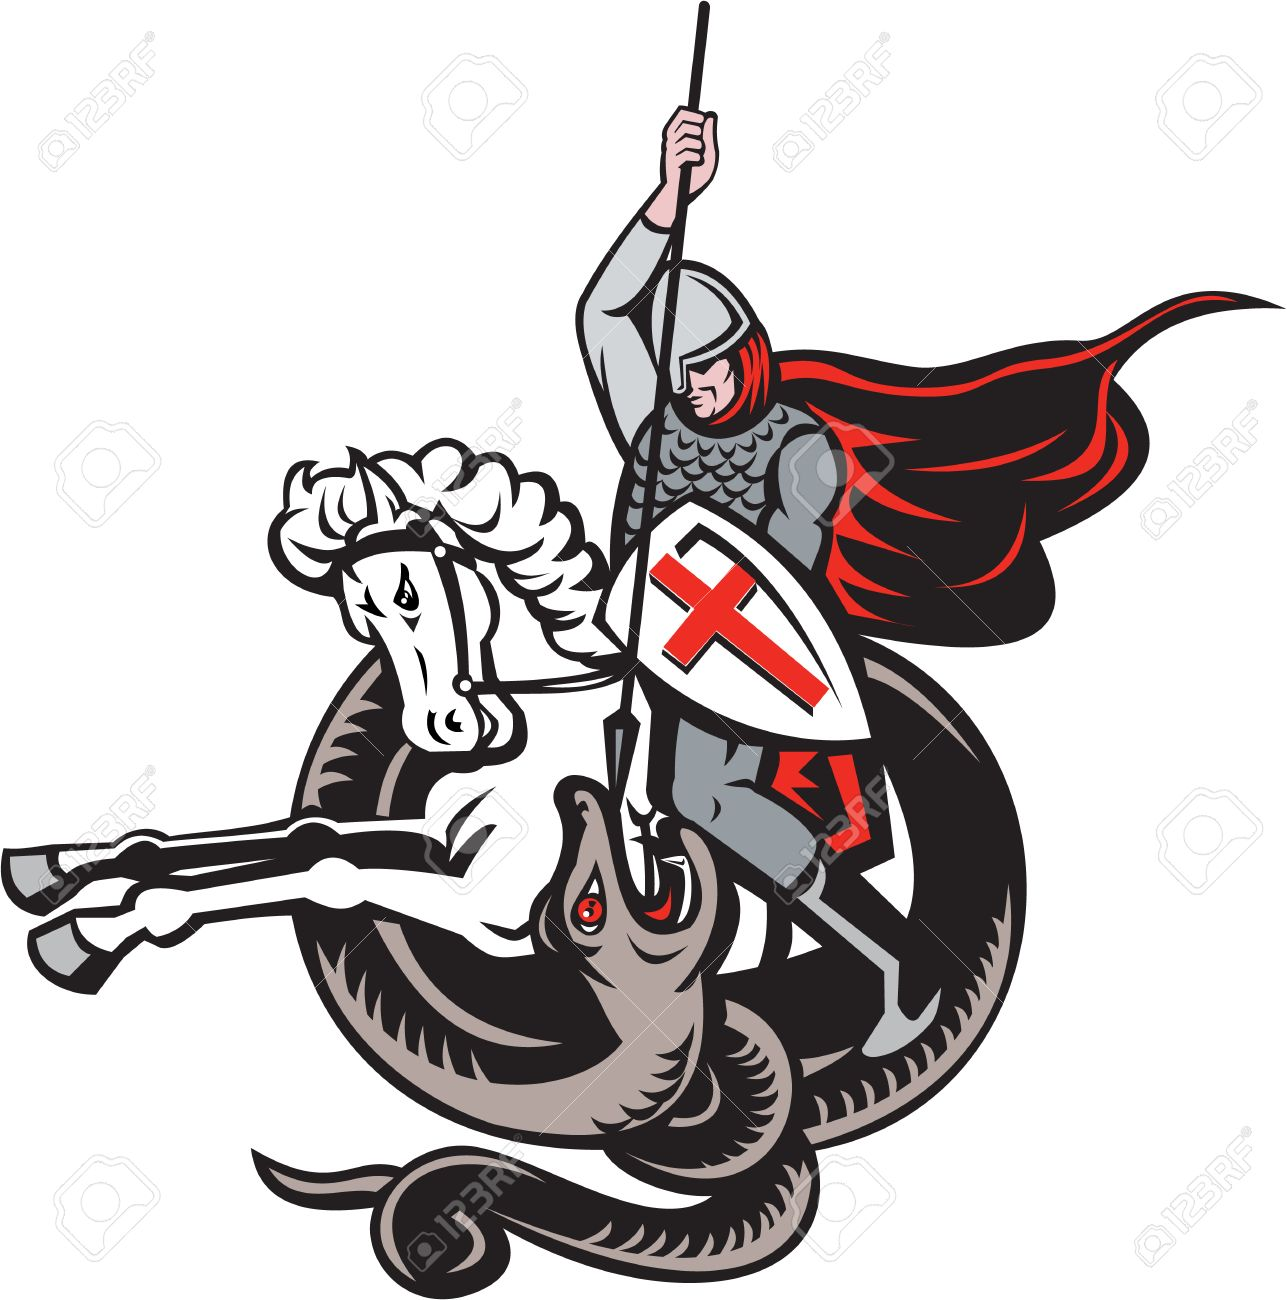 Illustration of an English knight in full armor with lance fighting dragon with England flag in background done in retro style. Stock Vector - 25967918